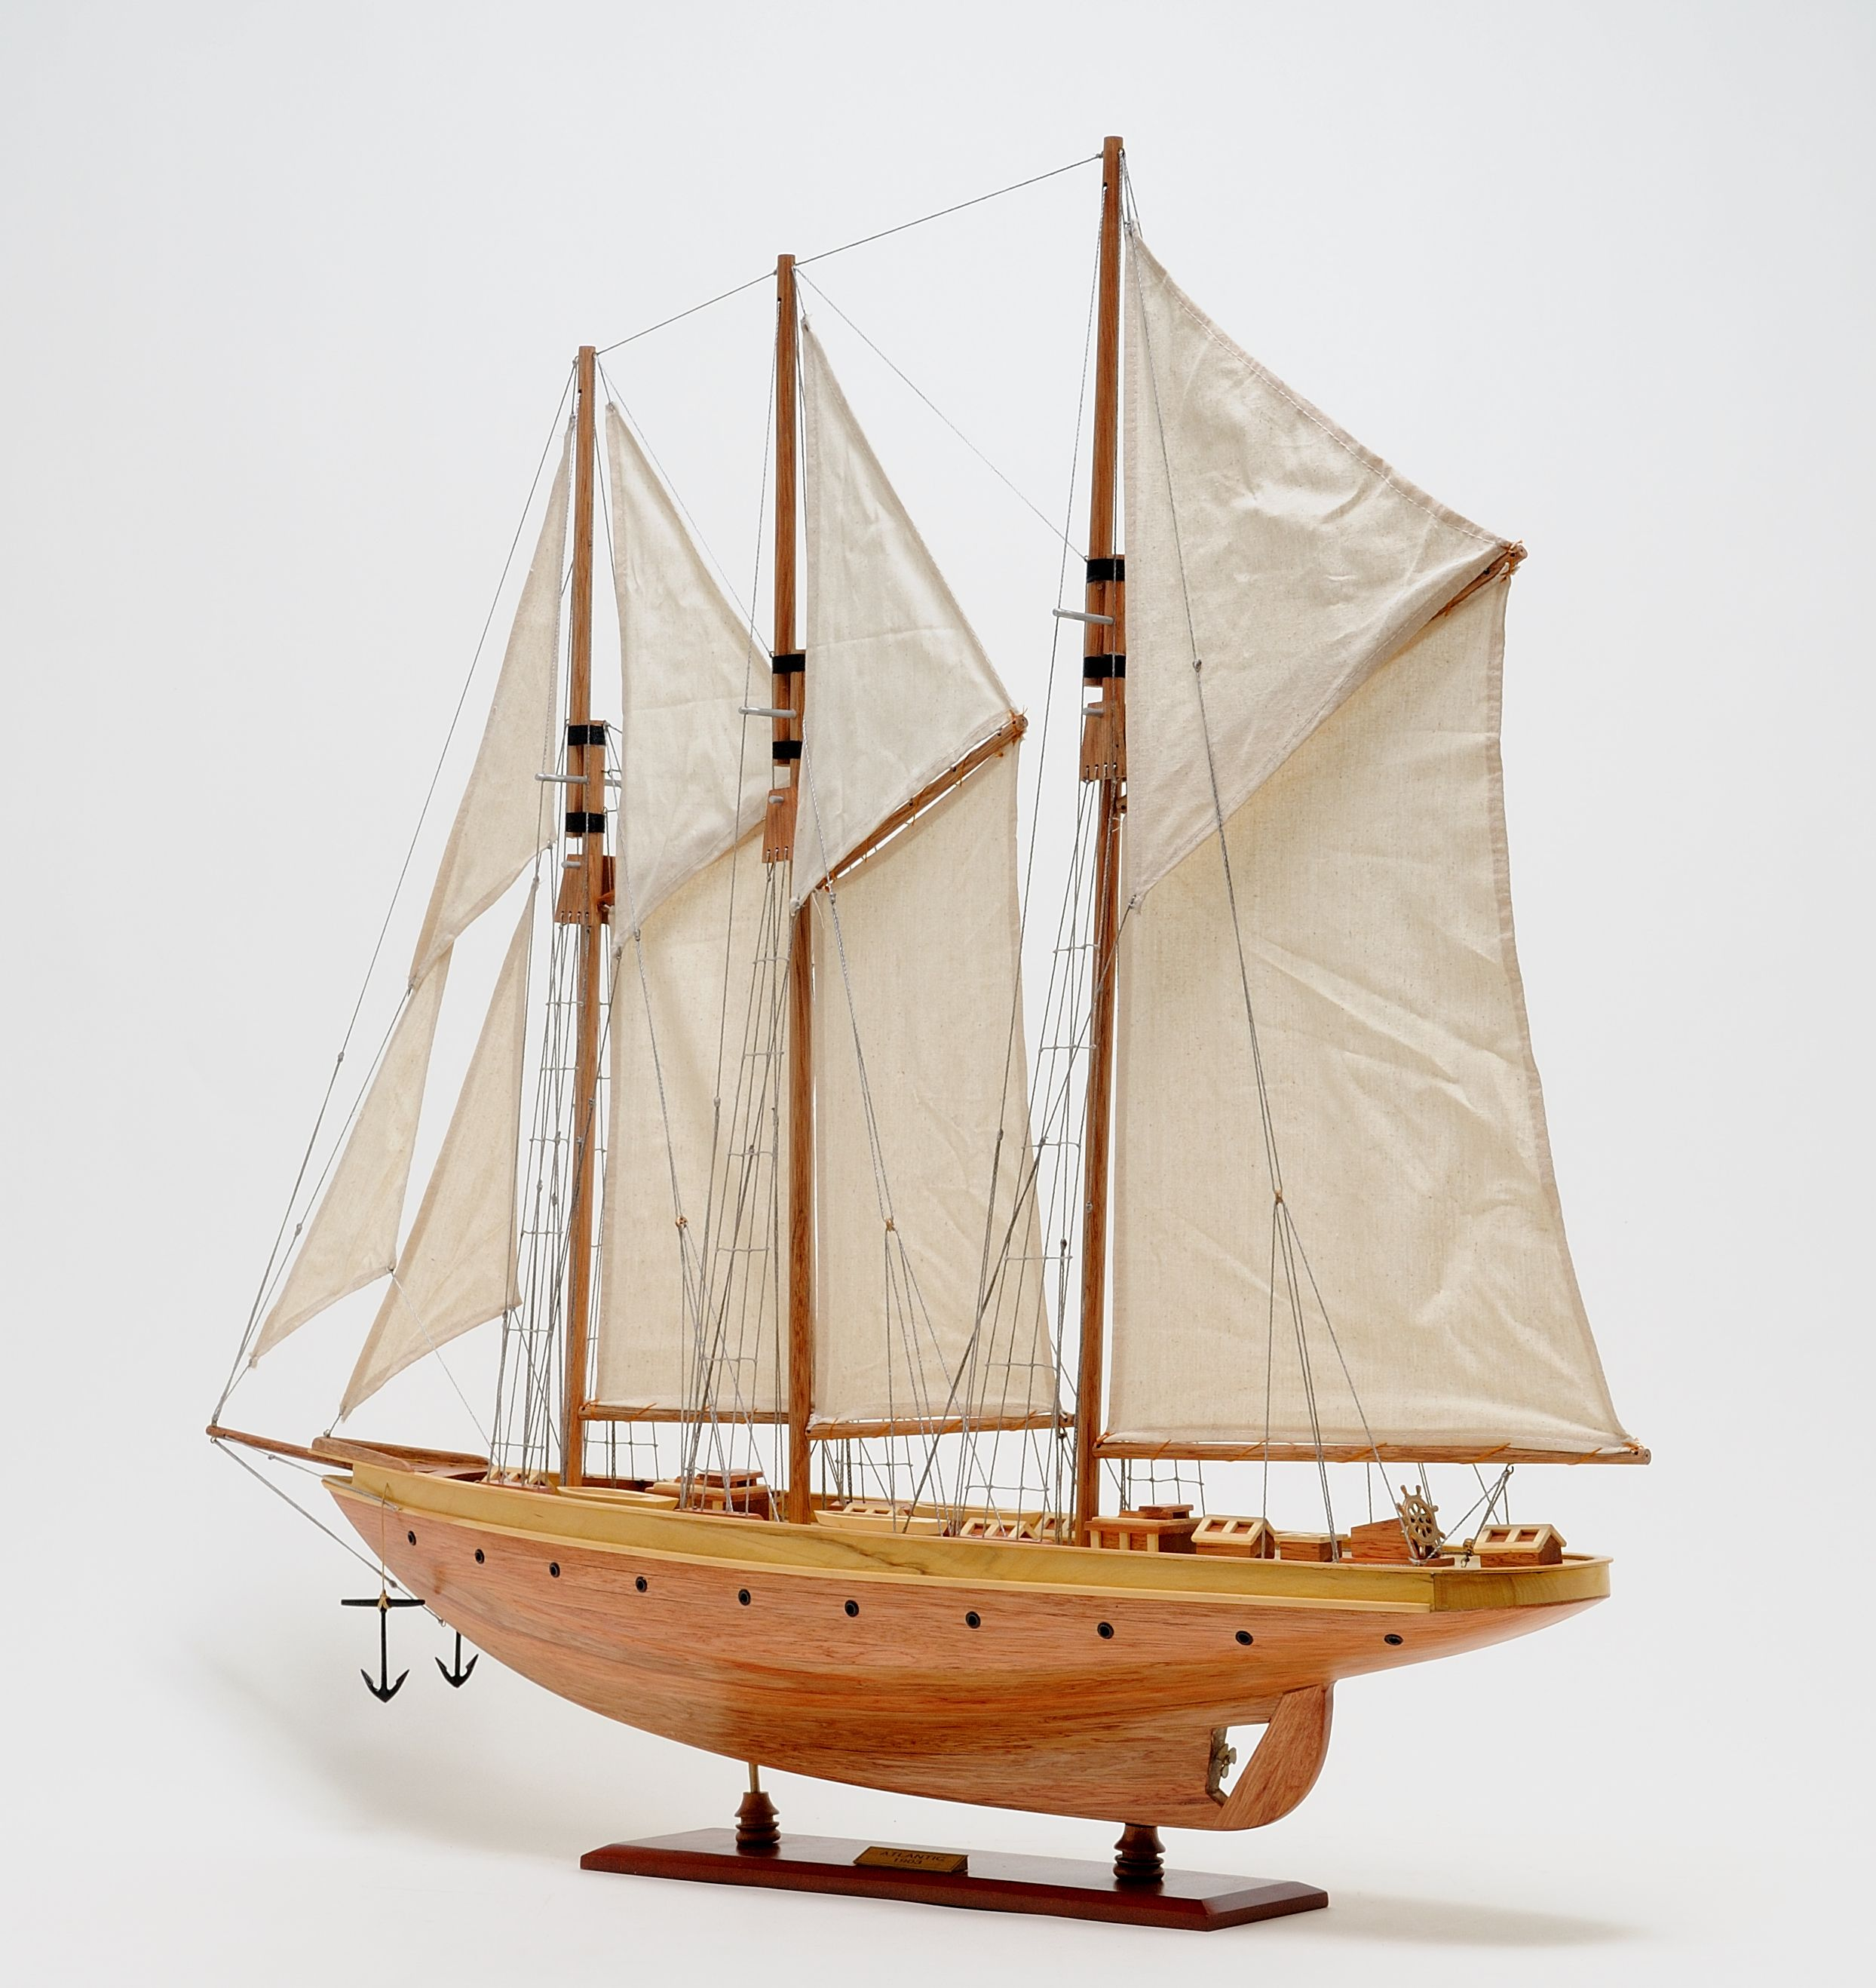 2278-13030-Atlantic-Model-Yacht